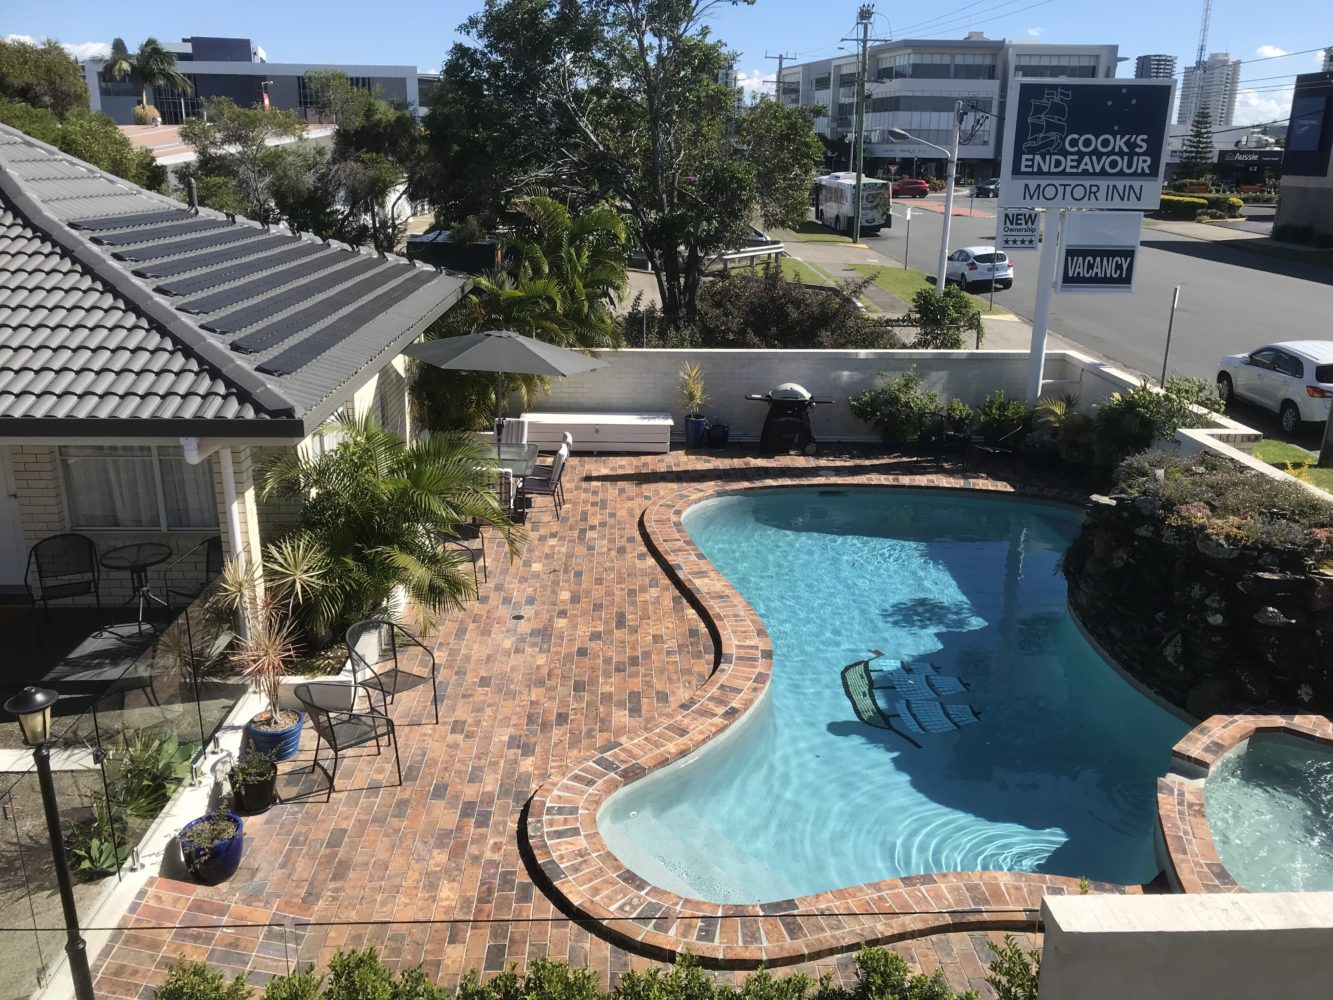 Pool & Entertainment Area Cooks Endeavour Motor Inn